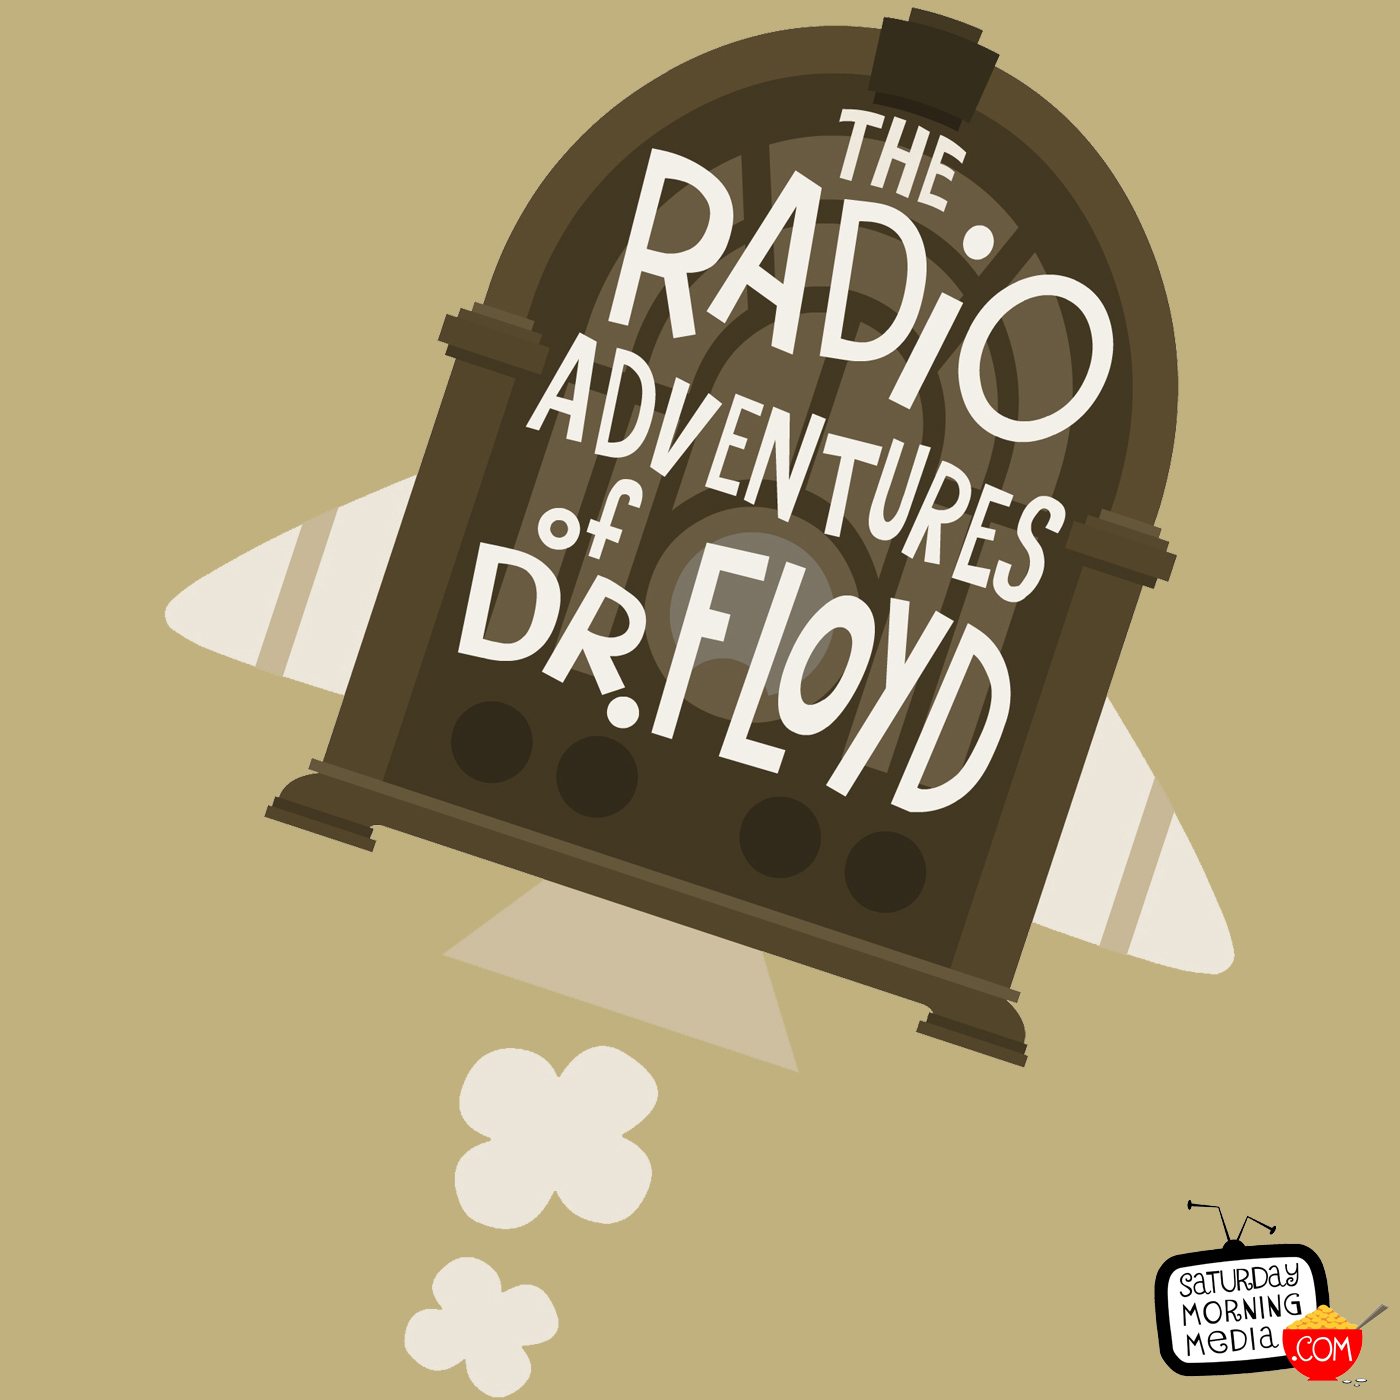 """Artwork for The Radio Adventures of Dr. Floyd EPISODE #402 """"To The End!"""""""